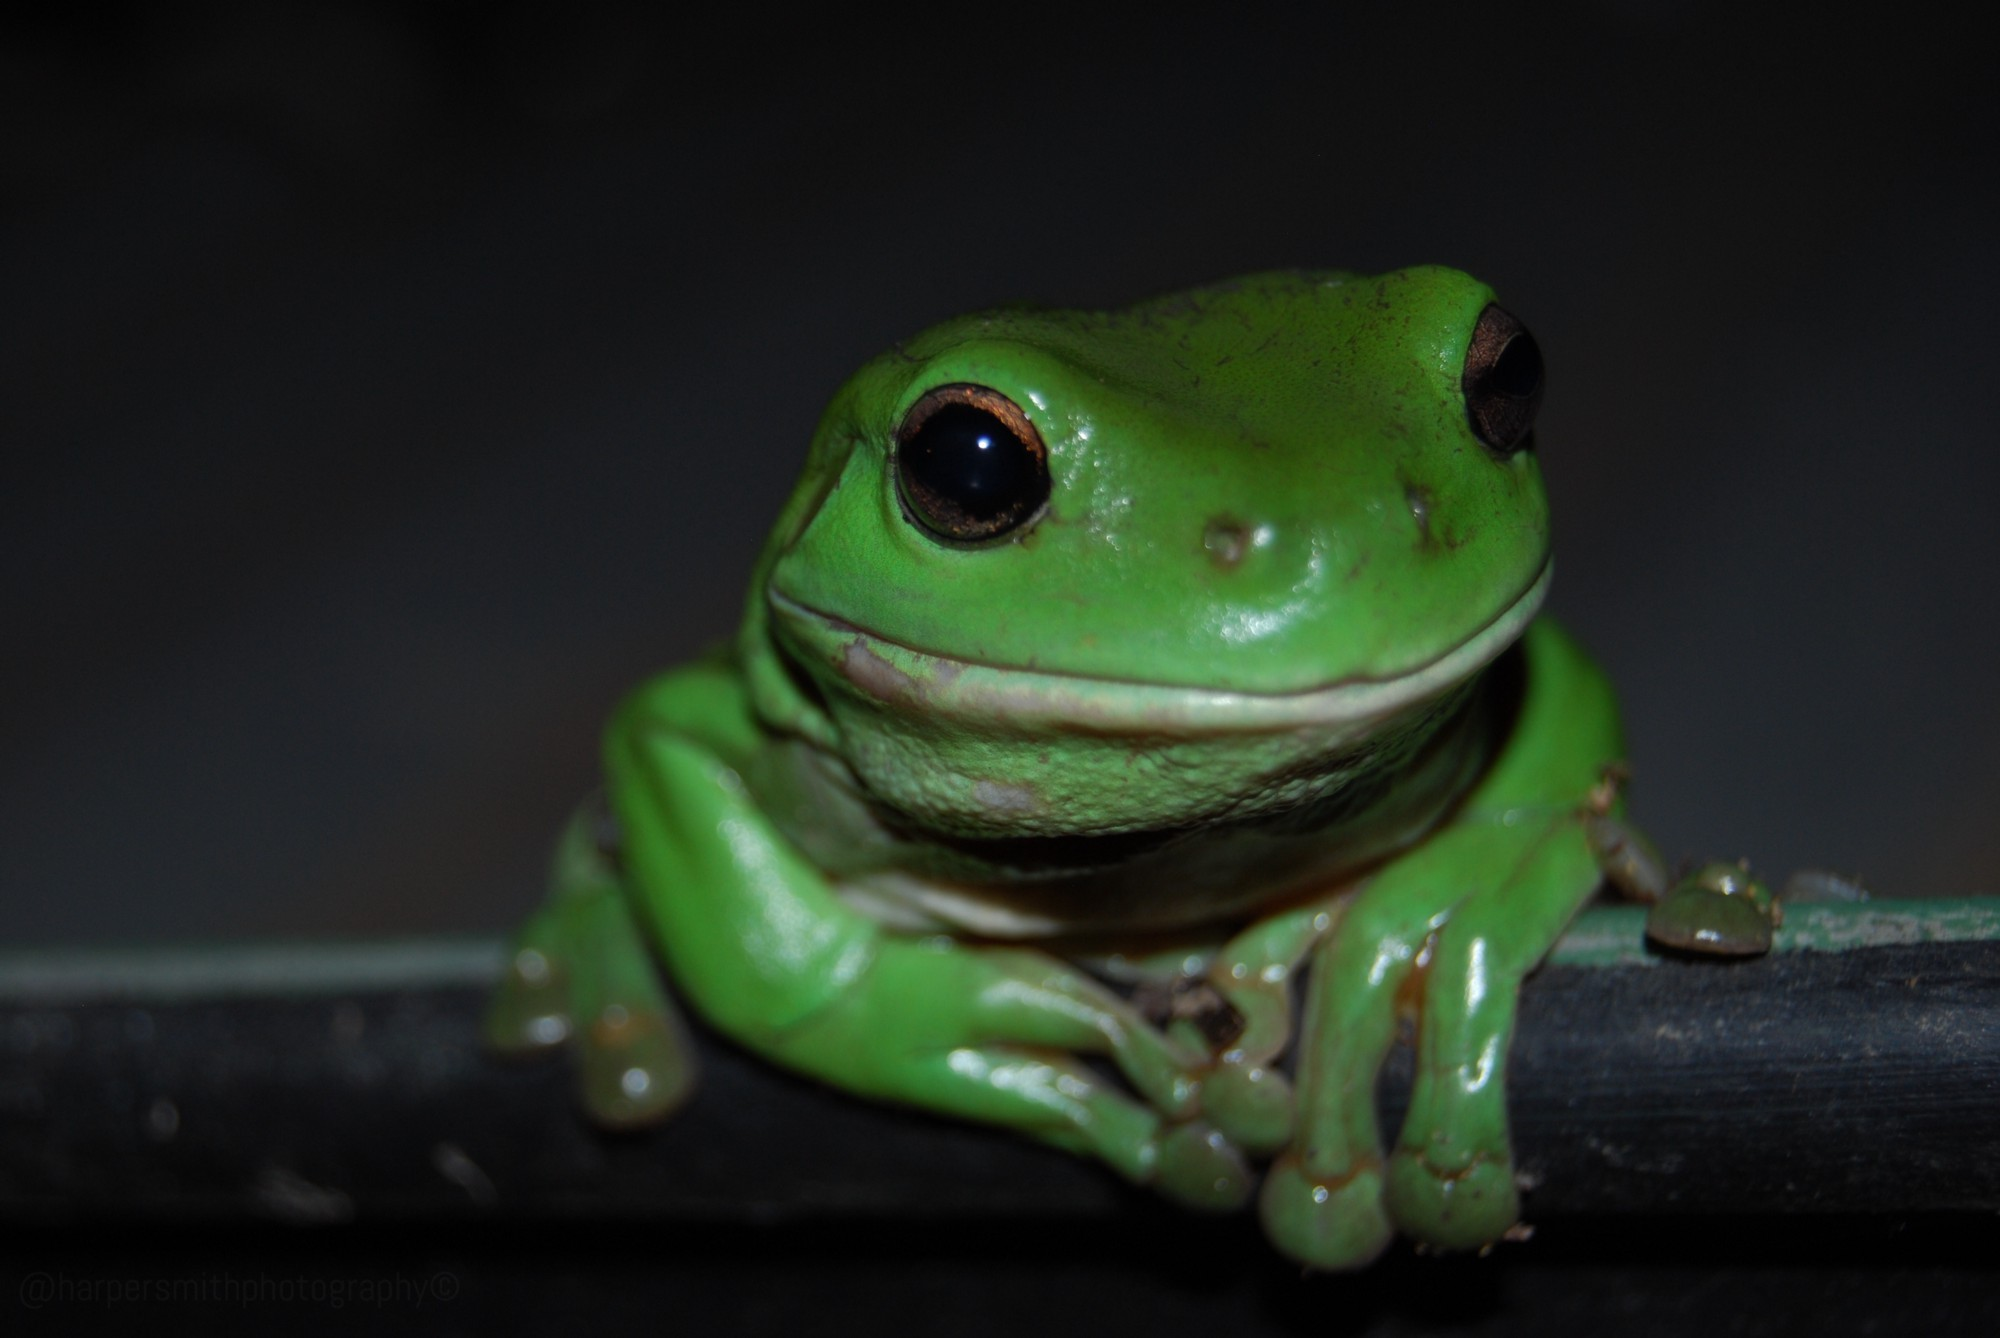 A picture of a green frog, representing Screaming frog's logo